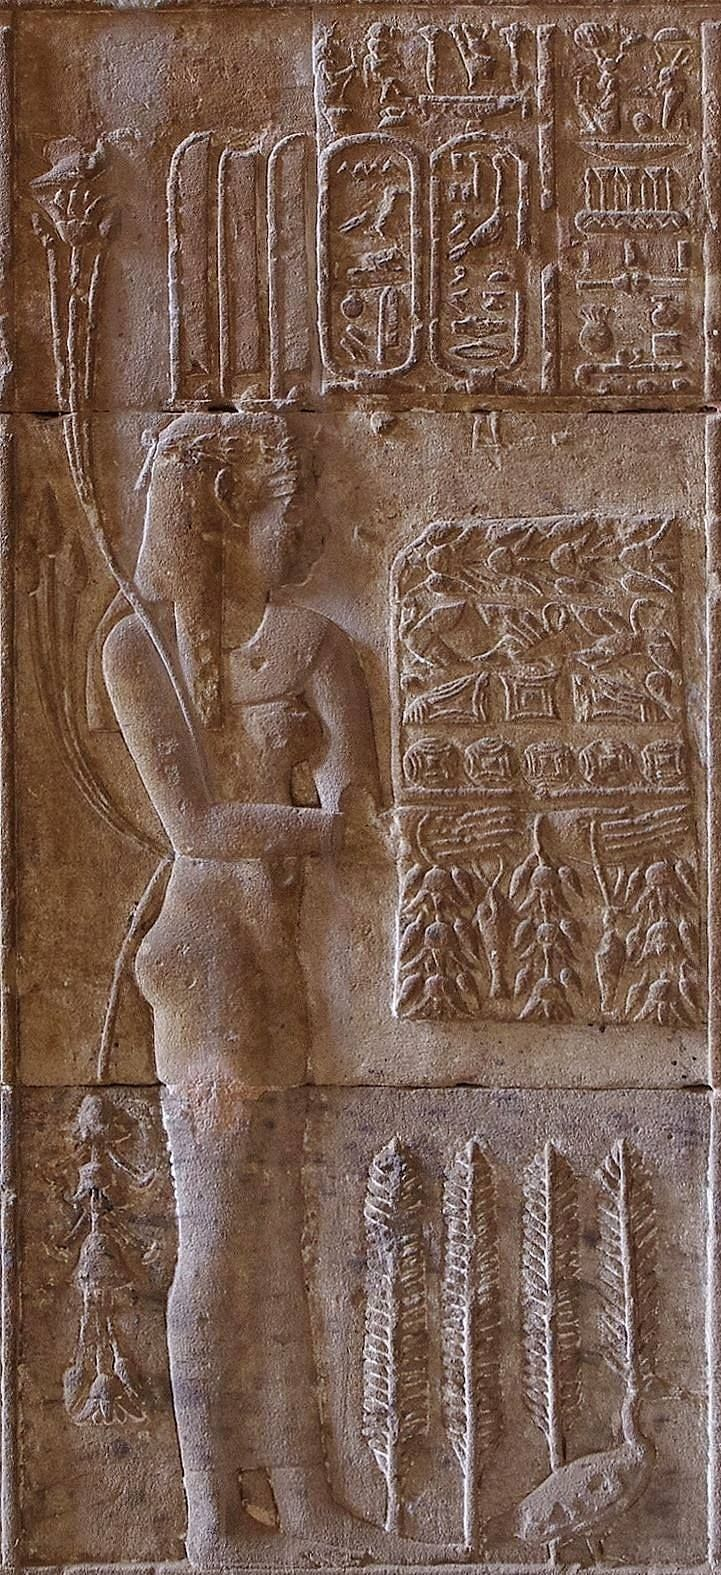 Temple of the Goddess Hathor at Nitentóre (Dendera), detail from the procession represented on the lower frieze of the Hypostyle Hall: Sekhet, the Goddess of the Fields, bringing loaves, birds and flowers